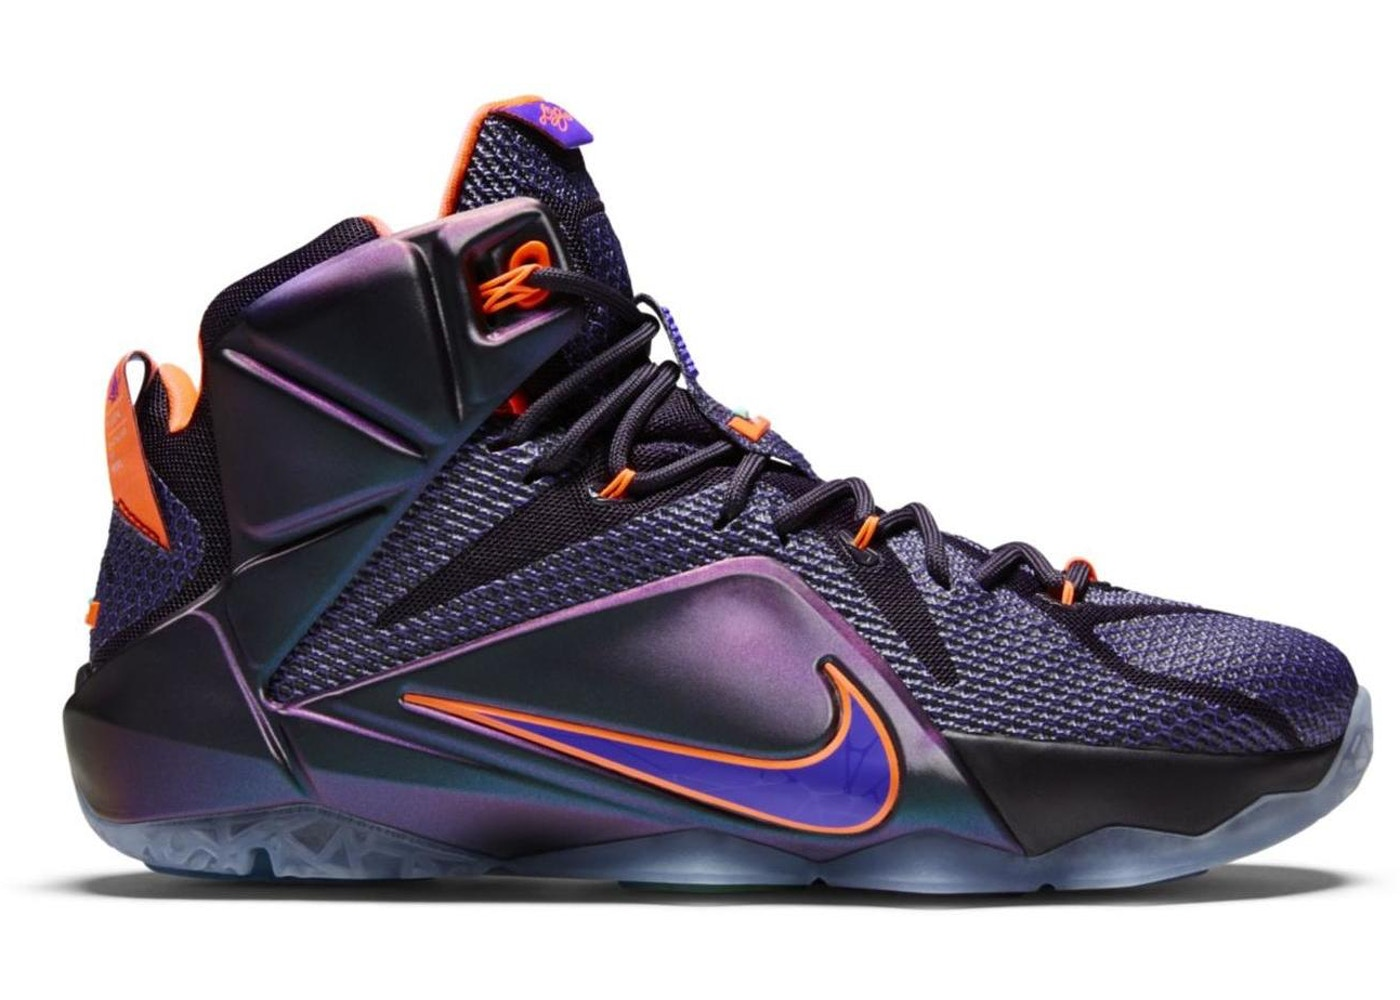 new arrival b2fde 37cfd Buy Nike LeBron 12 Shoes & Deadstock Sneakers